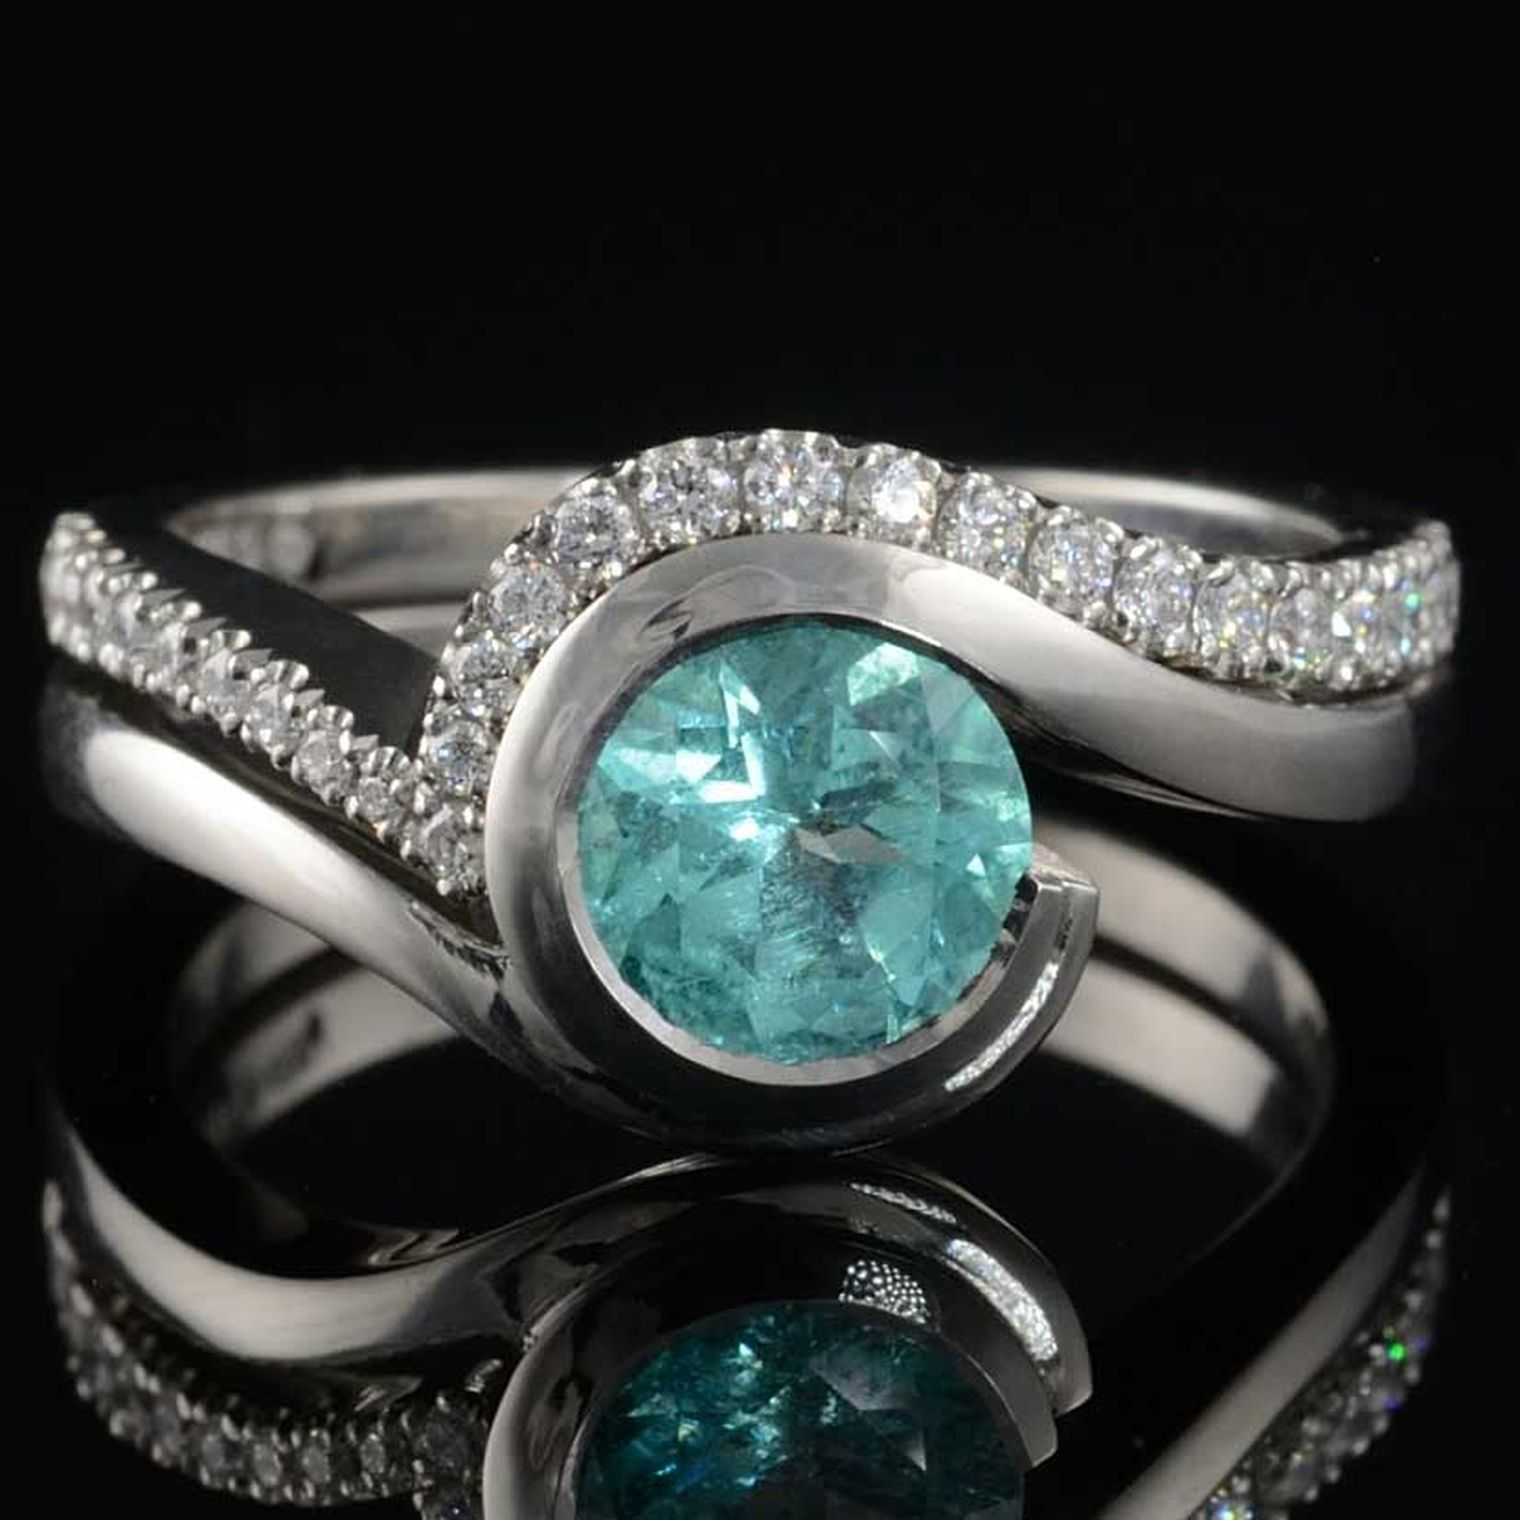 Diamond engagement rings goldsmiths - Mccaul Goldsmiths Bespoke Wave  Paraiba Tourmaline And Diamond Engagement Ring